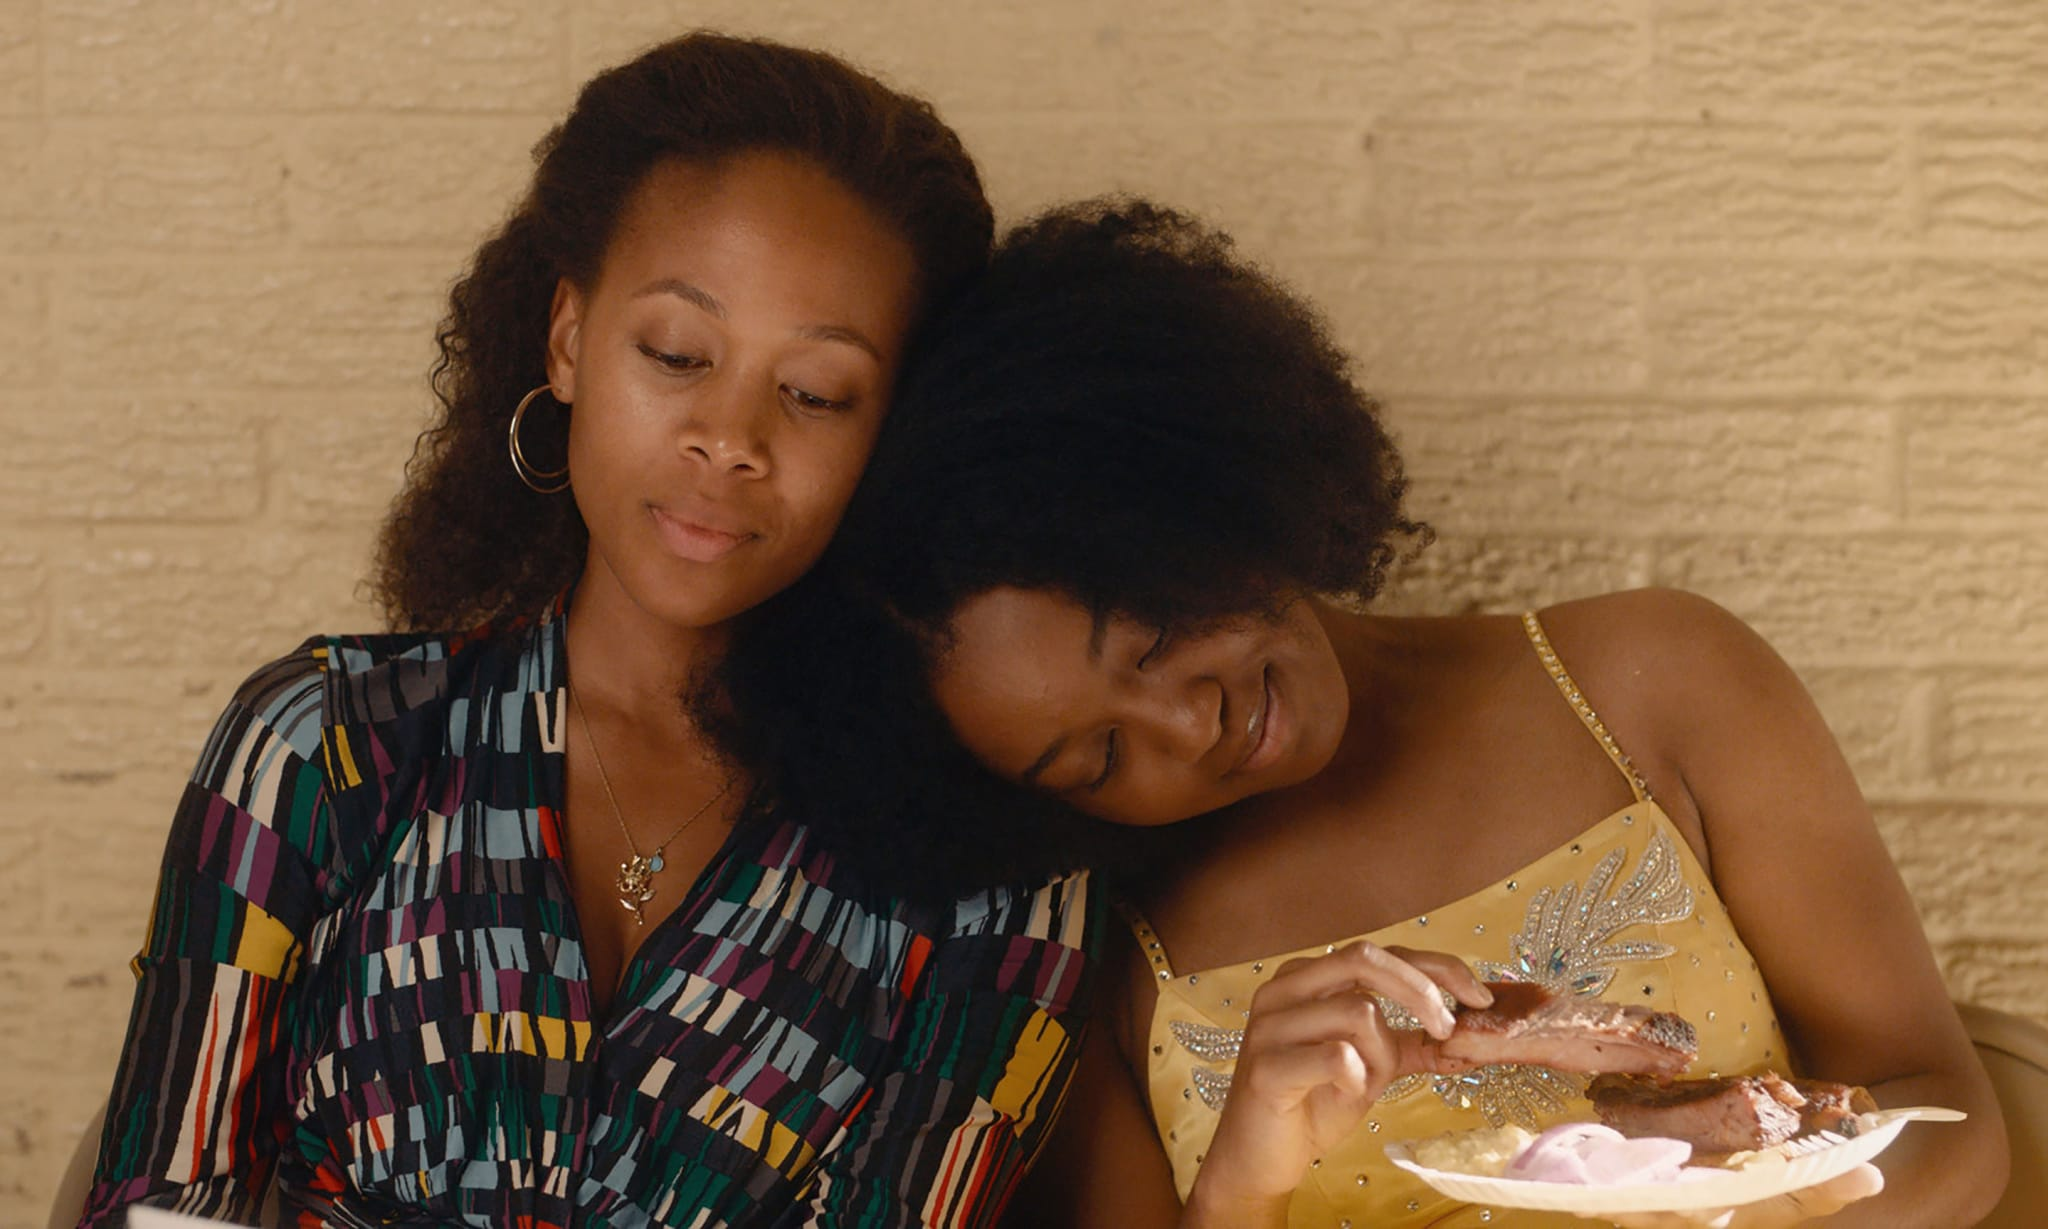 A woman resting her head on another woman's shoulder.